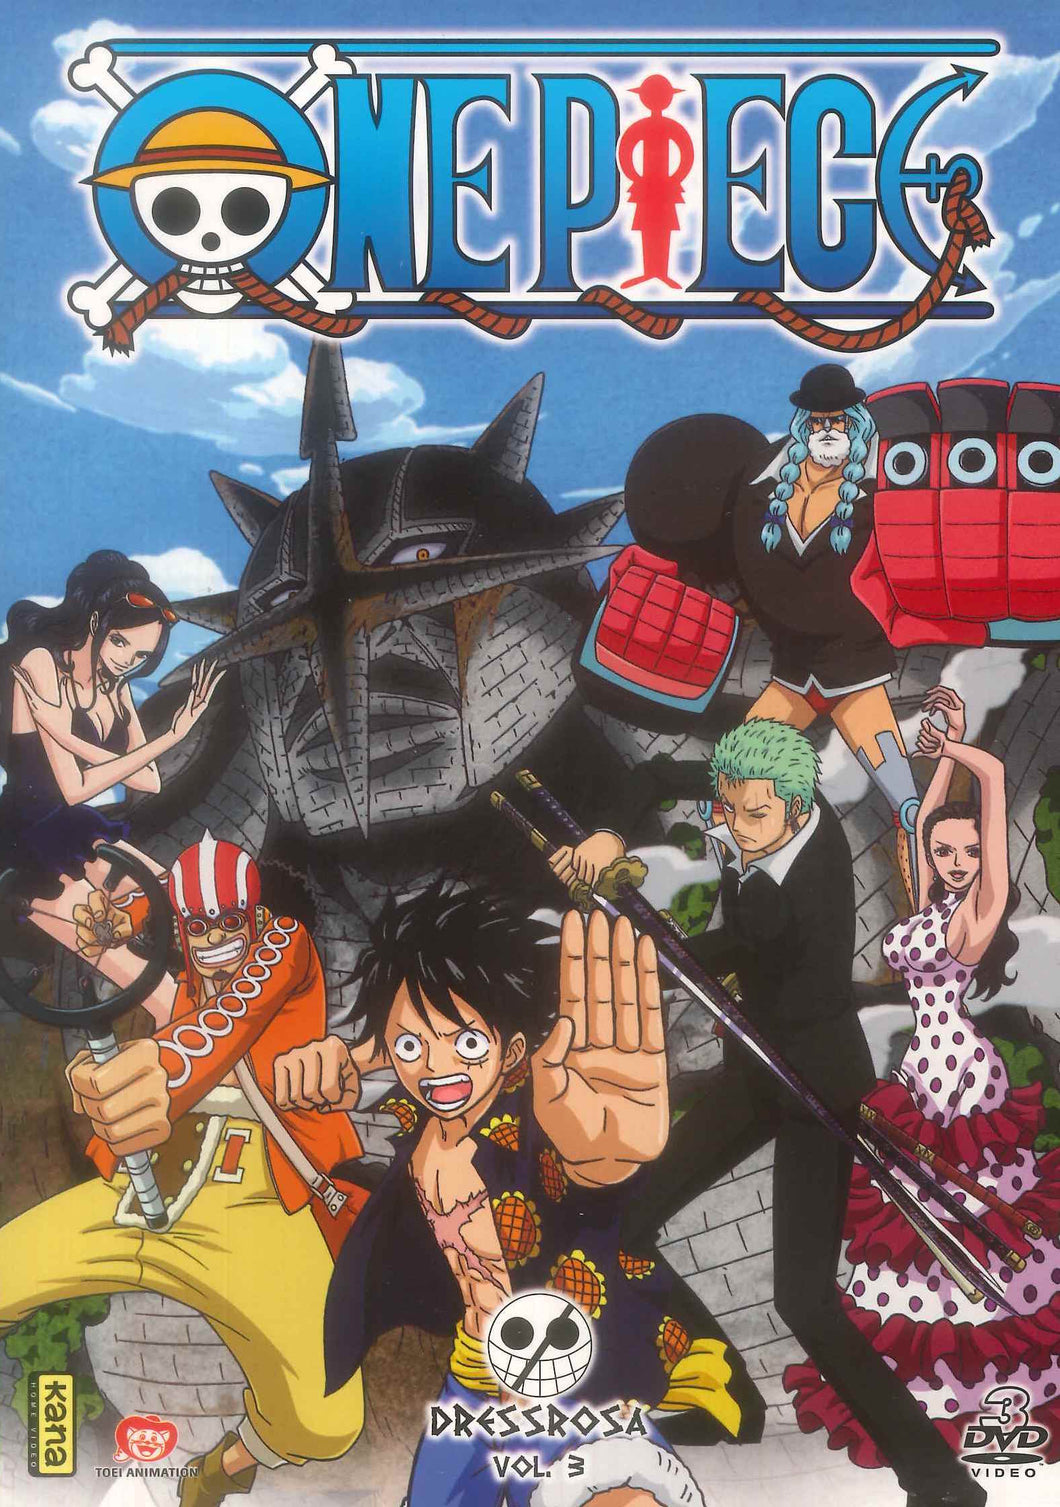 ONE PIECE DRESSROSA - Vol 3 (4DVD)